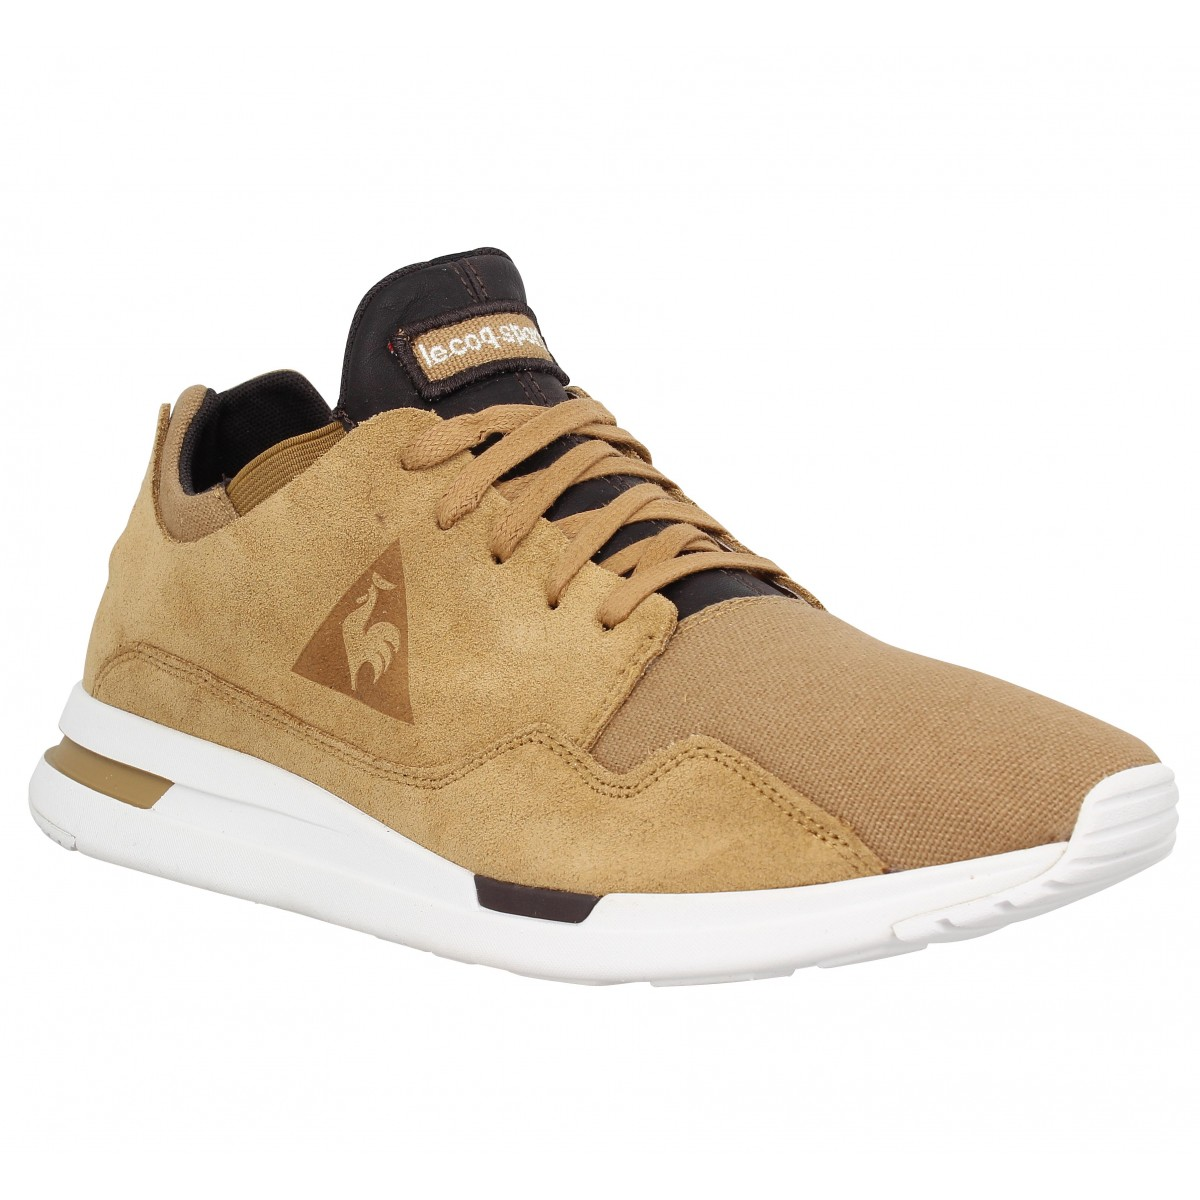 le coq sportif chaussures pour homme vente en ligne. Black Bedroom Furniture Sets. Home Design Ideas